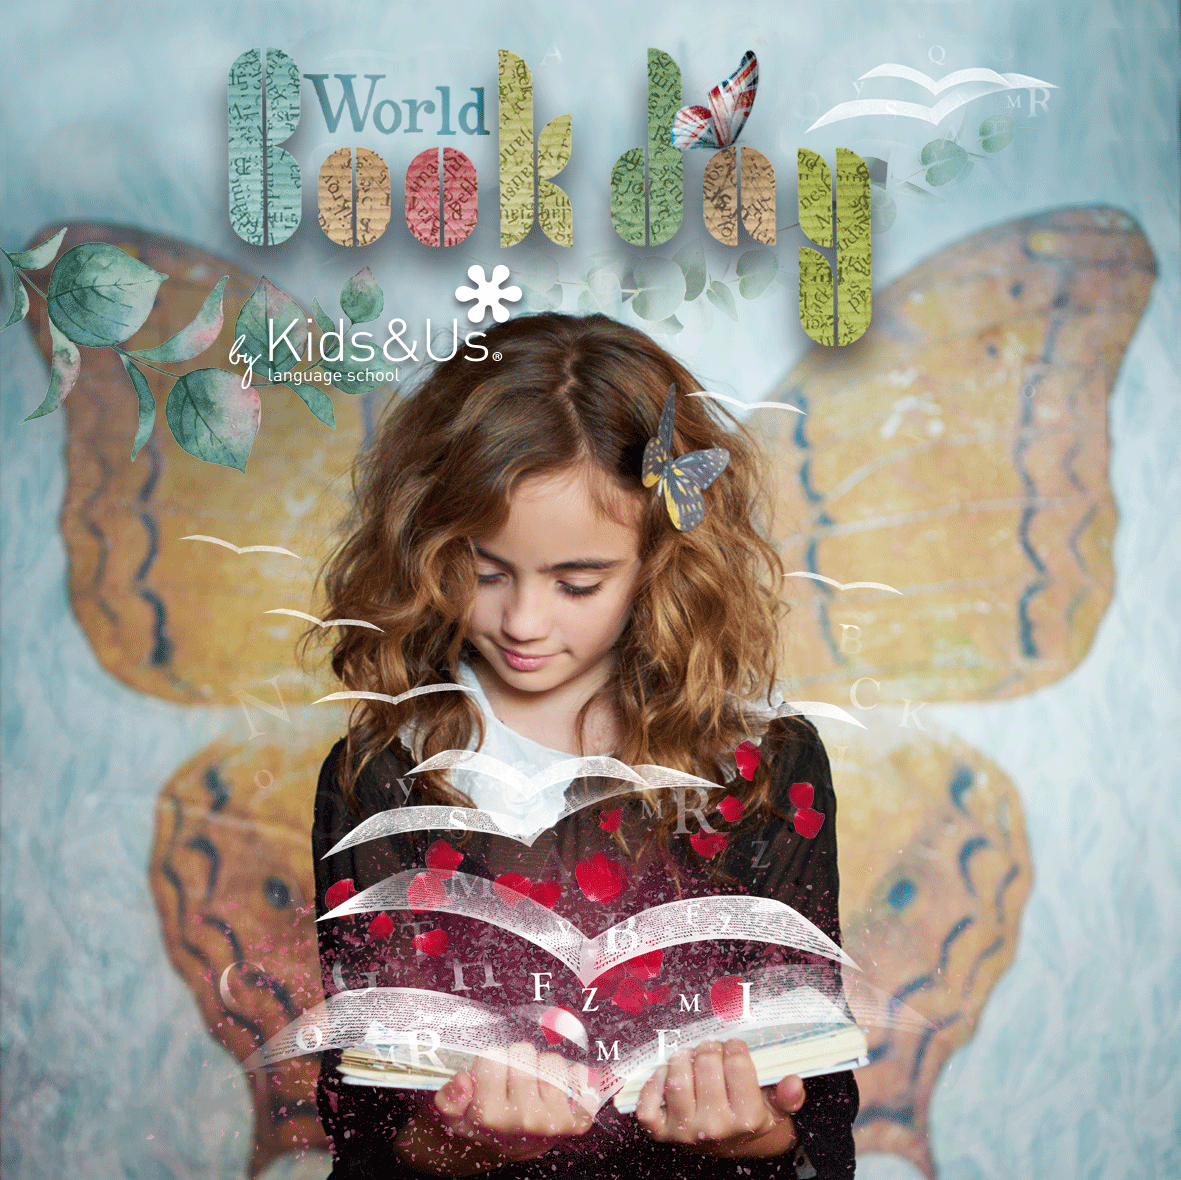 Se acerca World Book Day 2018